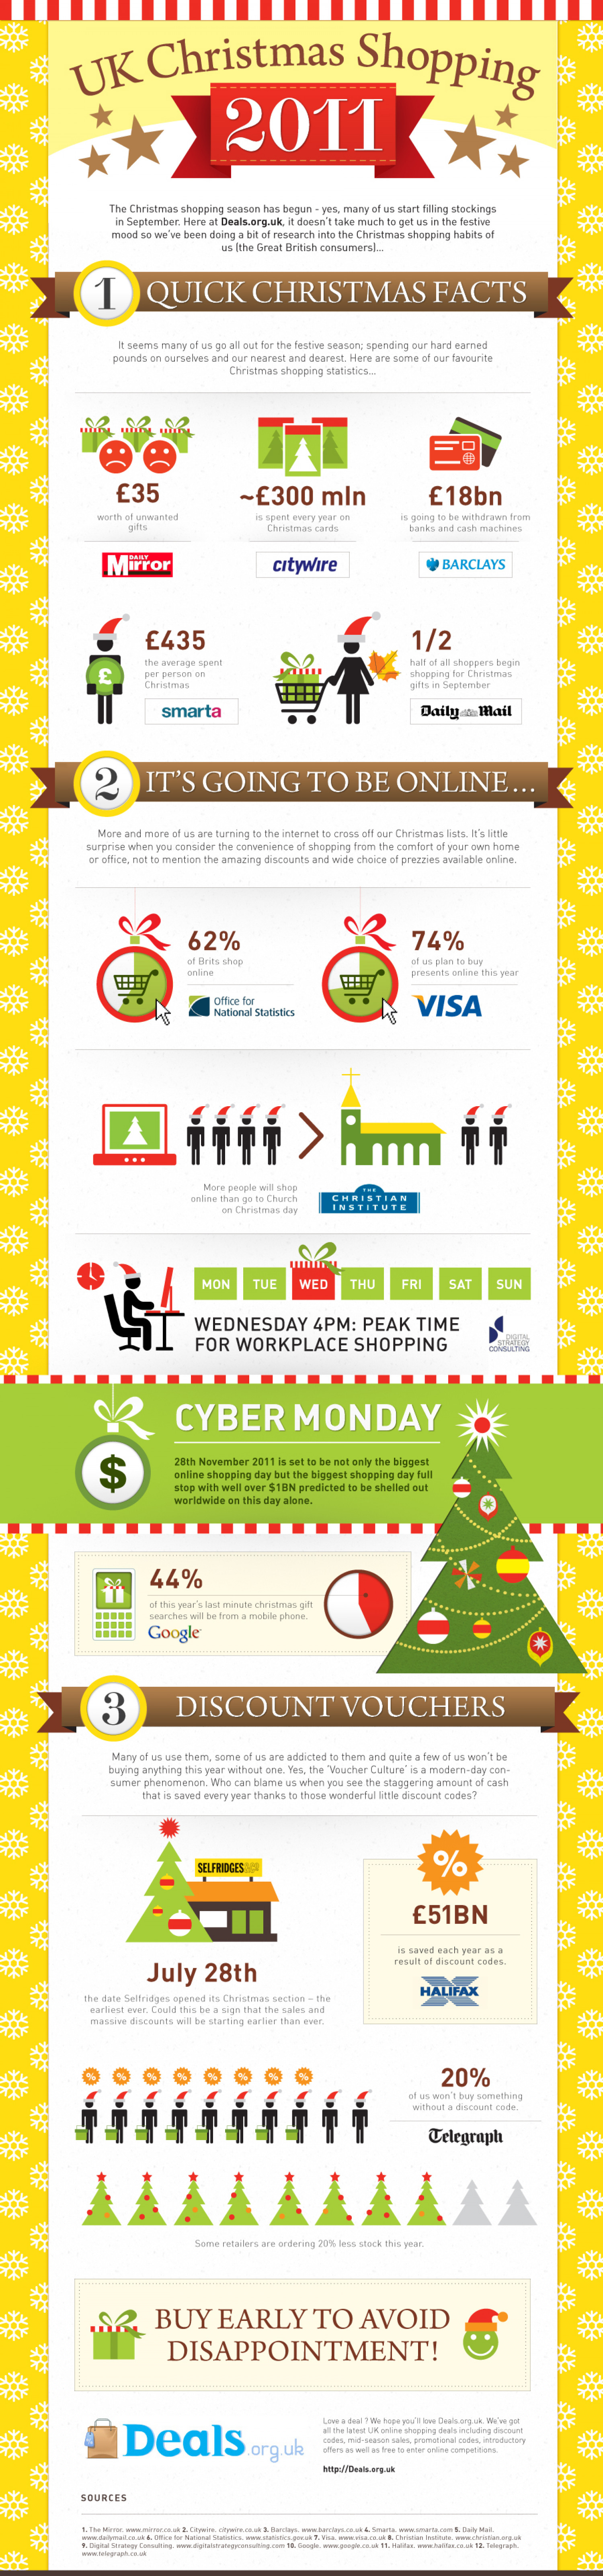 UK Christmas Shopping in 2011 Infographic